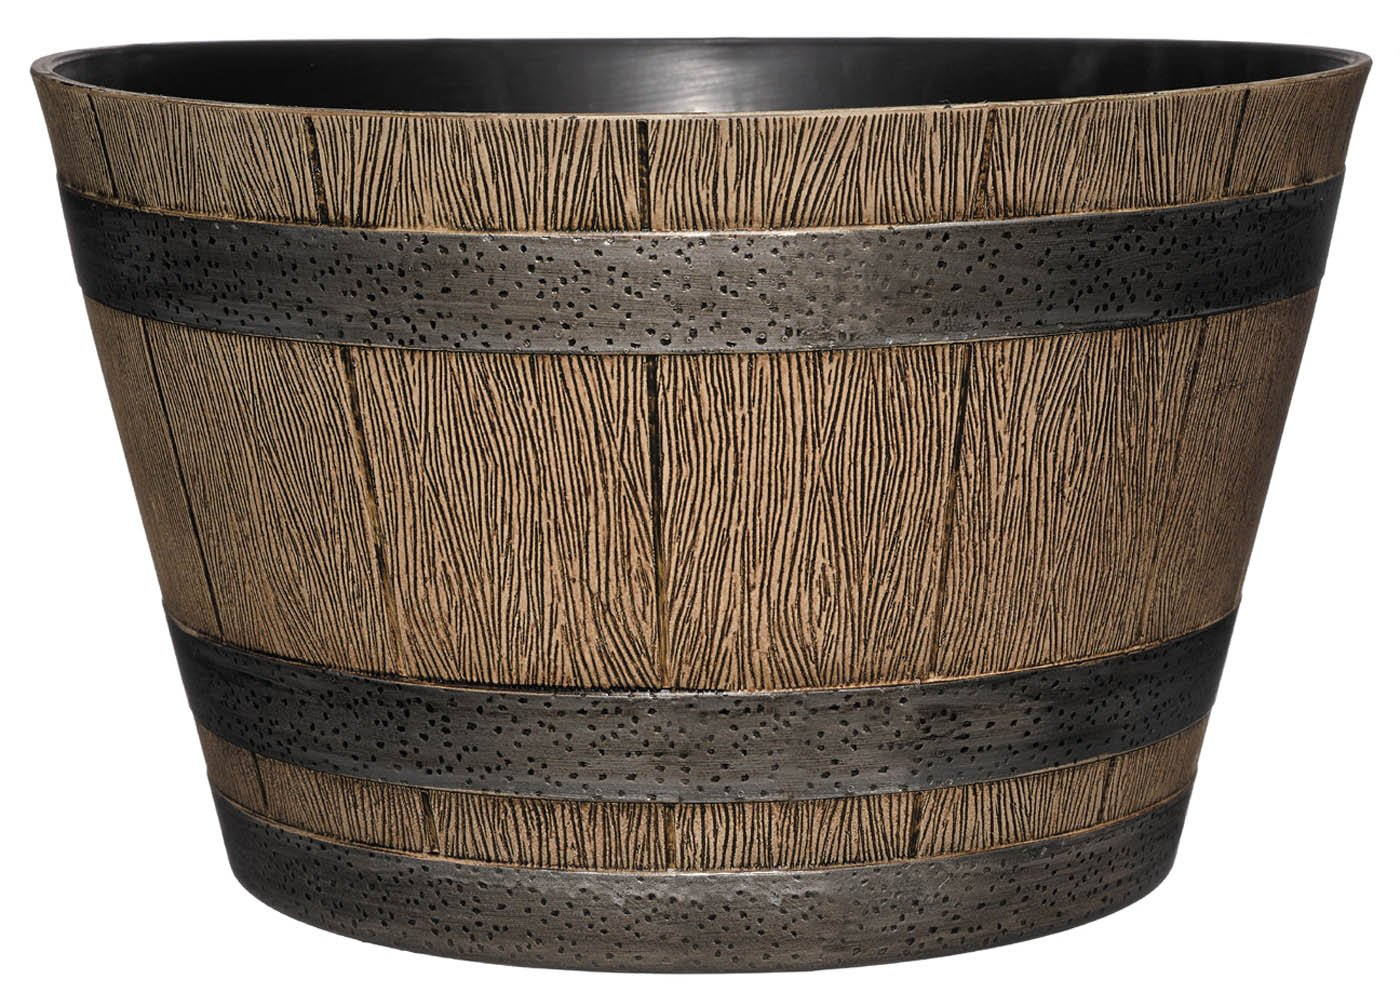 Classic Home and Garden HD1-1027 DisOak Whiskey Barrel, 20.5'' Distressed Oak